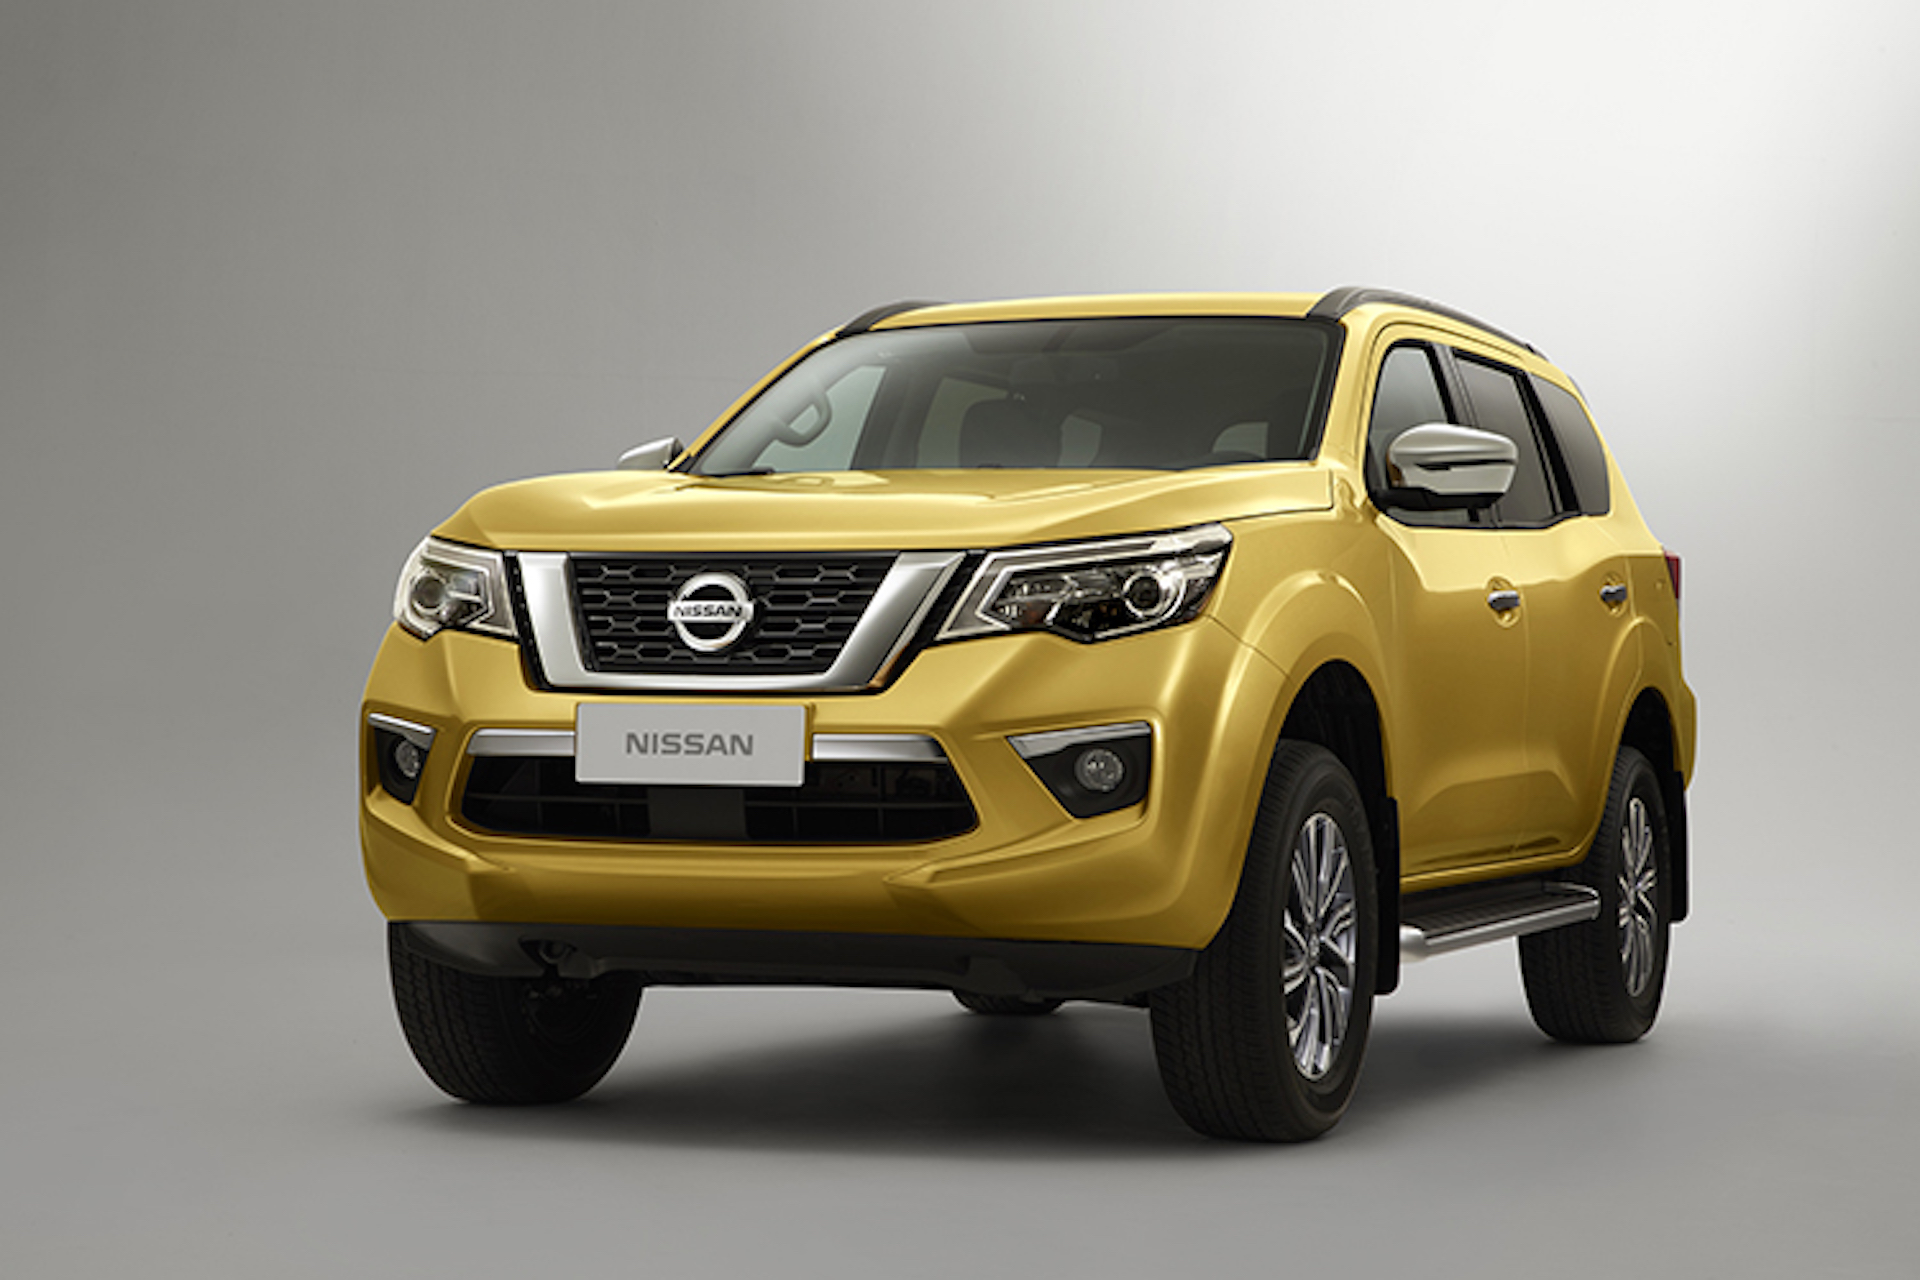 Nissan Terra Body On Frame Suv Officially Revealed For China Could